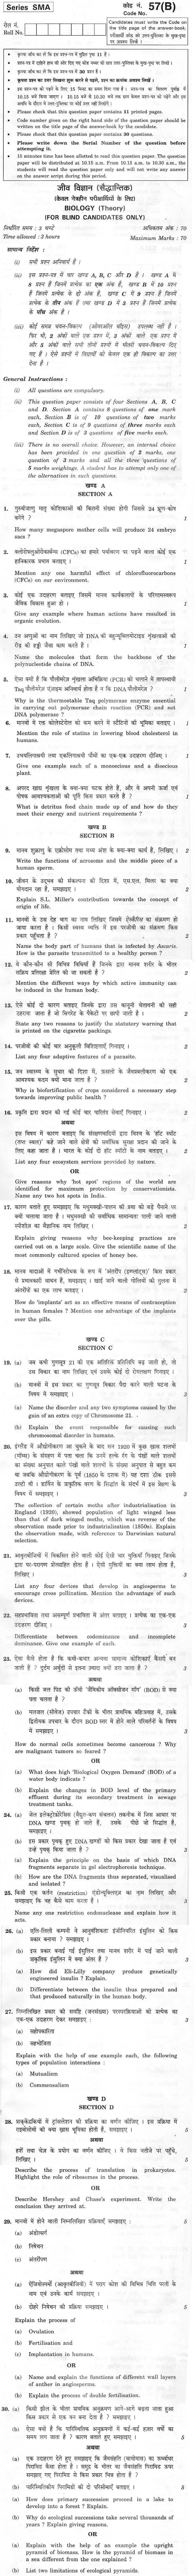 CBSE Class XII Previous Year Question Paper 2012 Biology for Blind Candidates